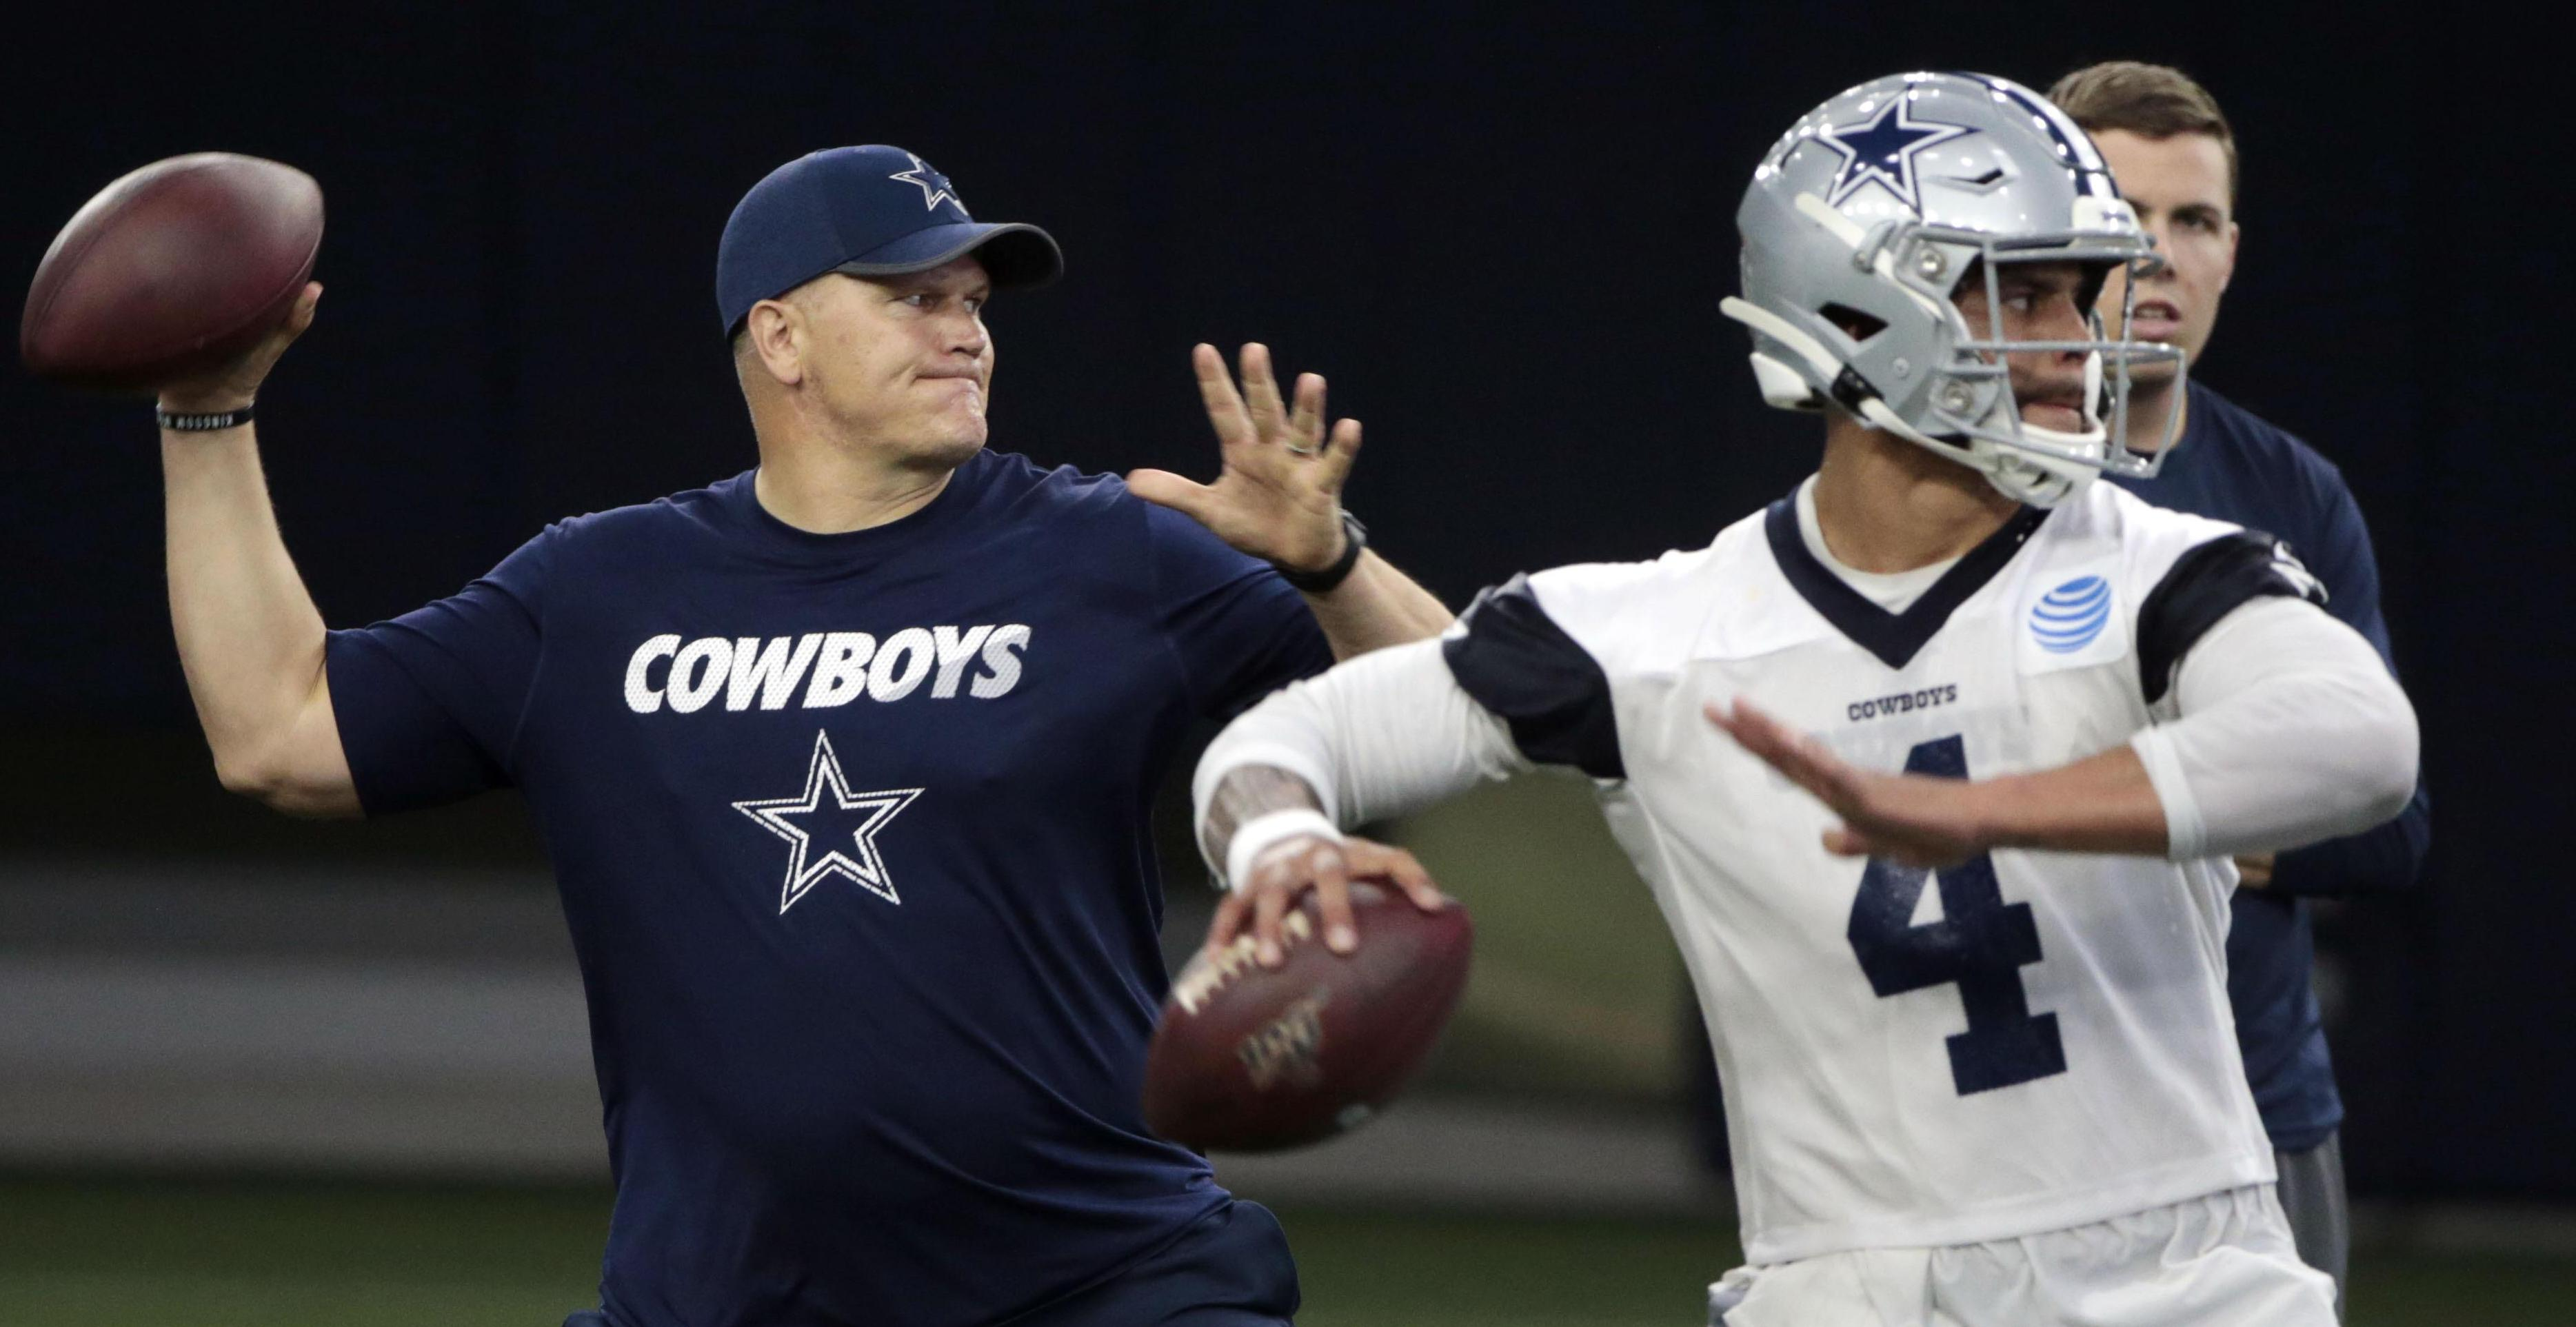 'Too Many Chefs in Dak's Kitchen' As McCarthy's Cowboys Reportedly Sack QB Coach Kitna